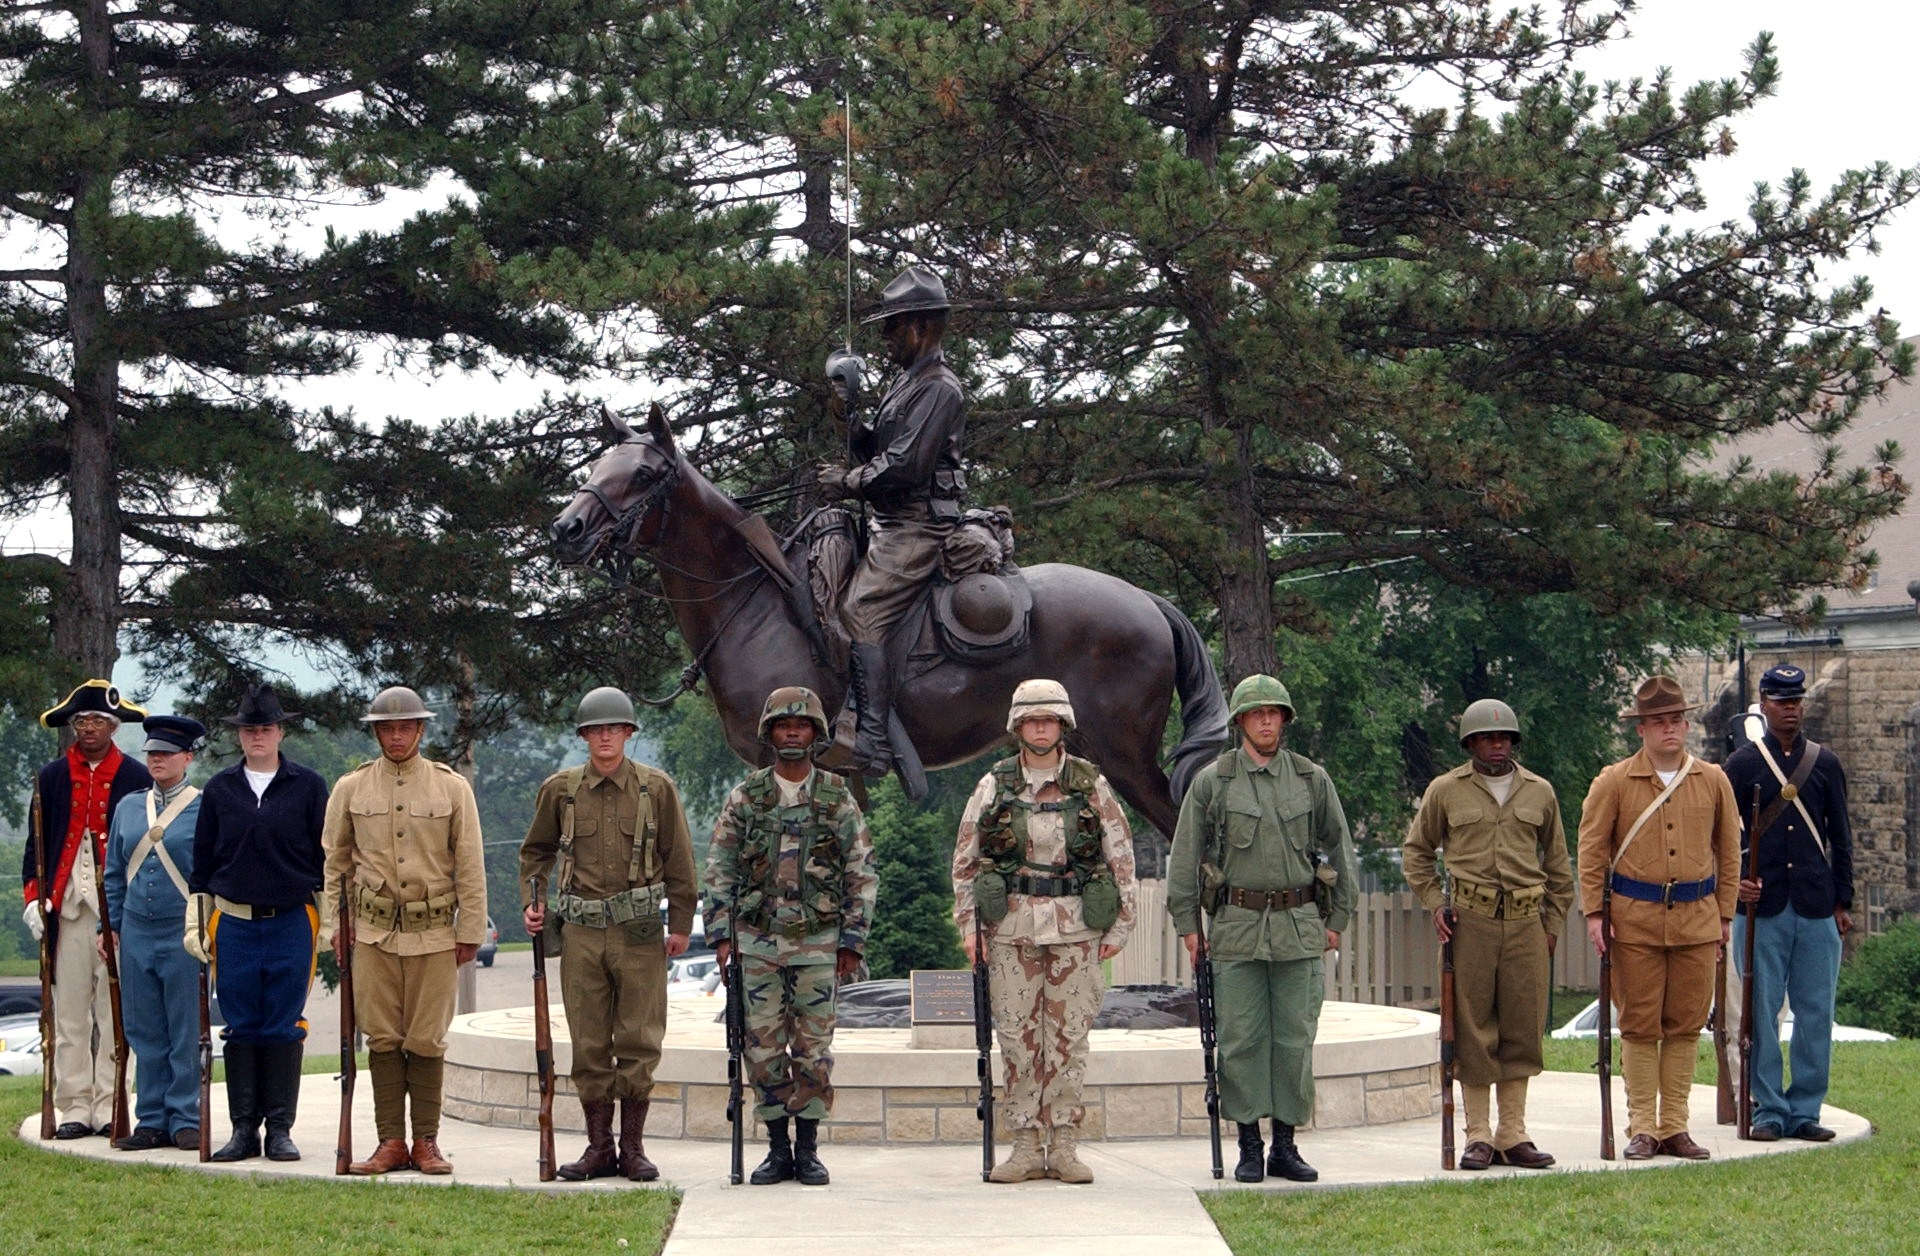 quotfort riley soldiers represent various periods in the army